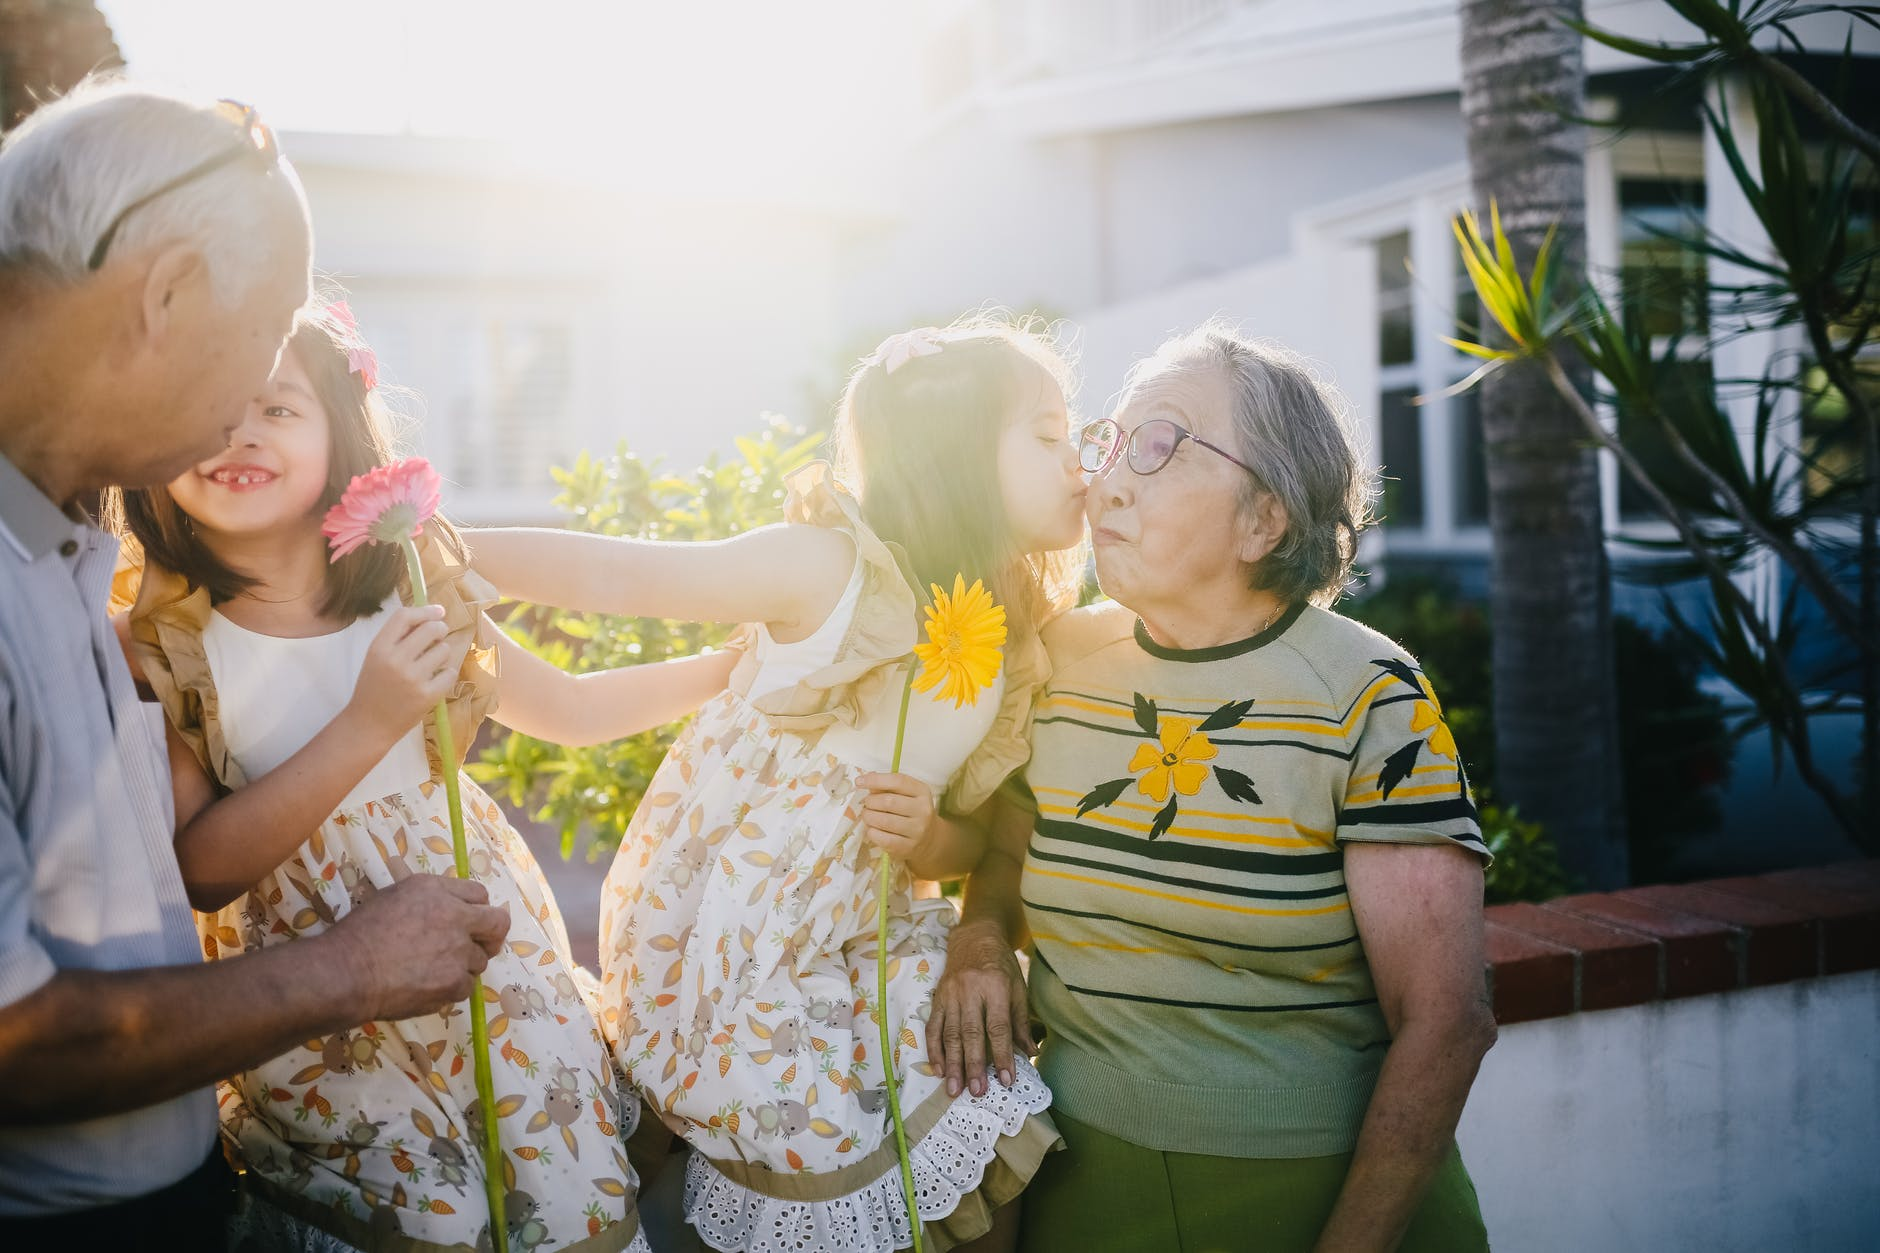 Three Thoughts on Grand Parents